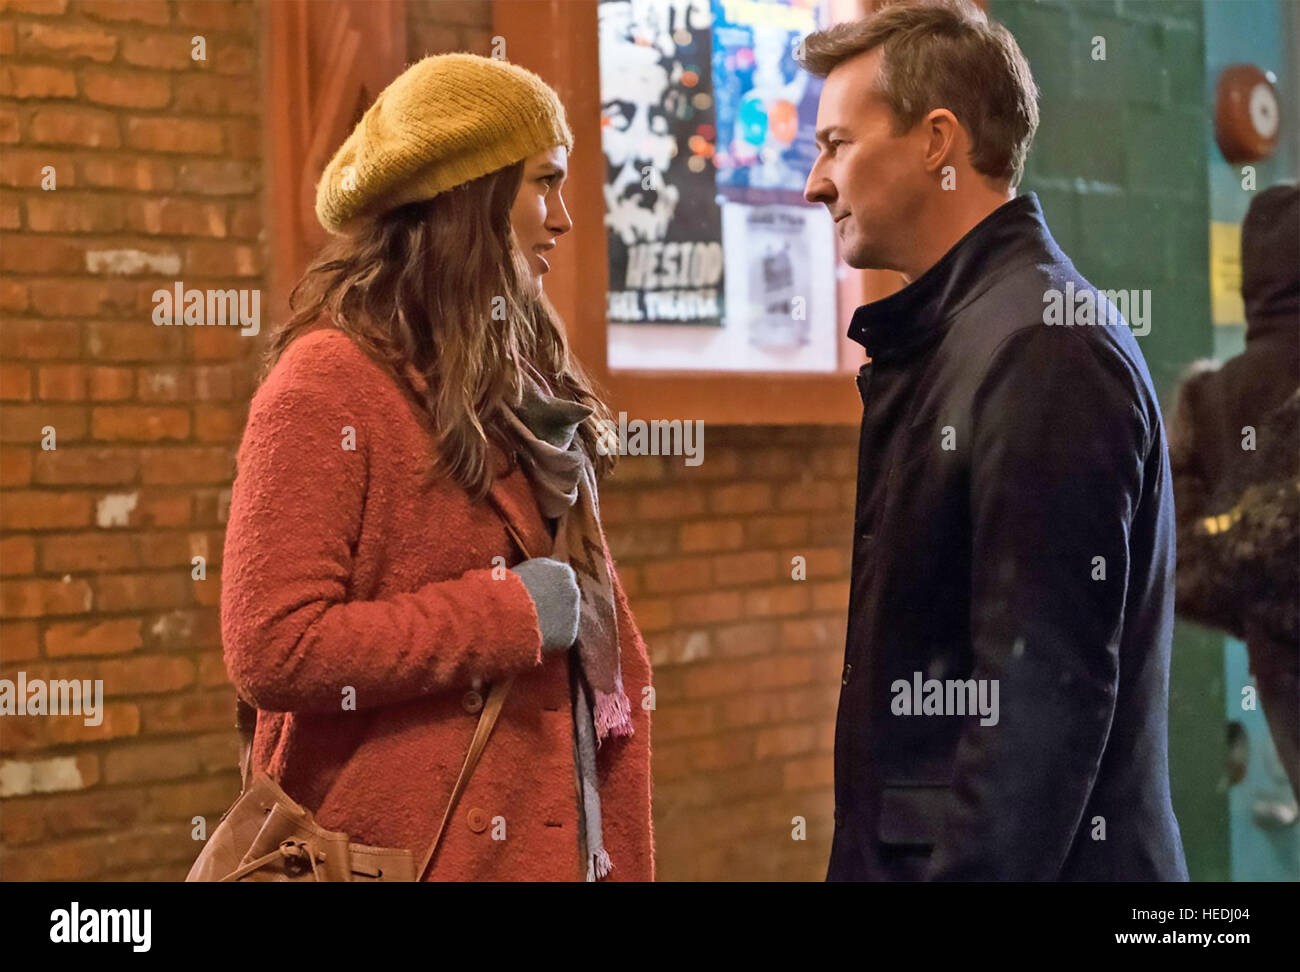 COLLATERAL BEAUTY 2016 Warner Bros film with Keira Knightley and Edward Norton - Stock Image